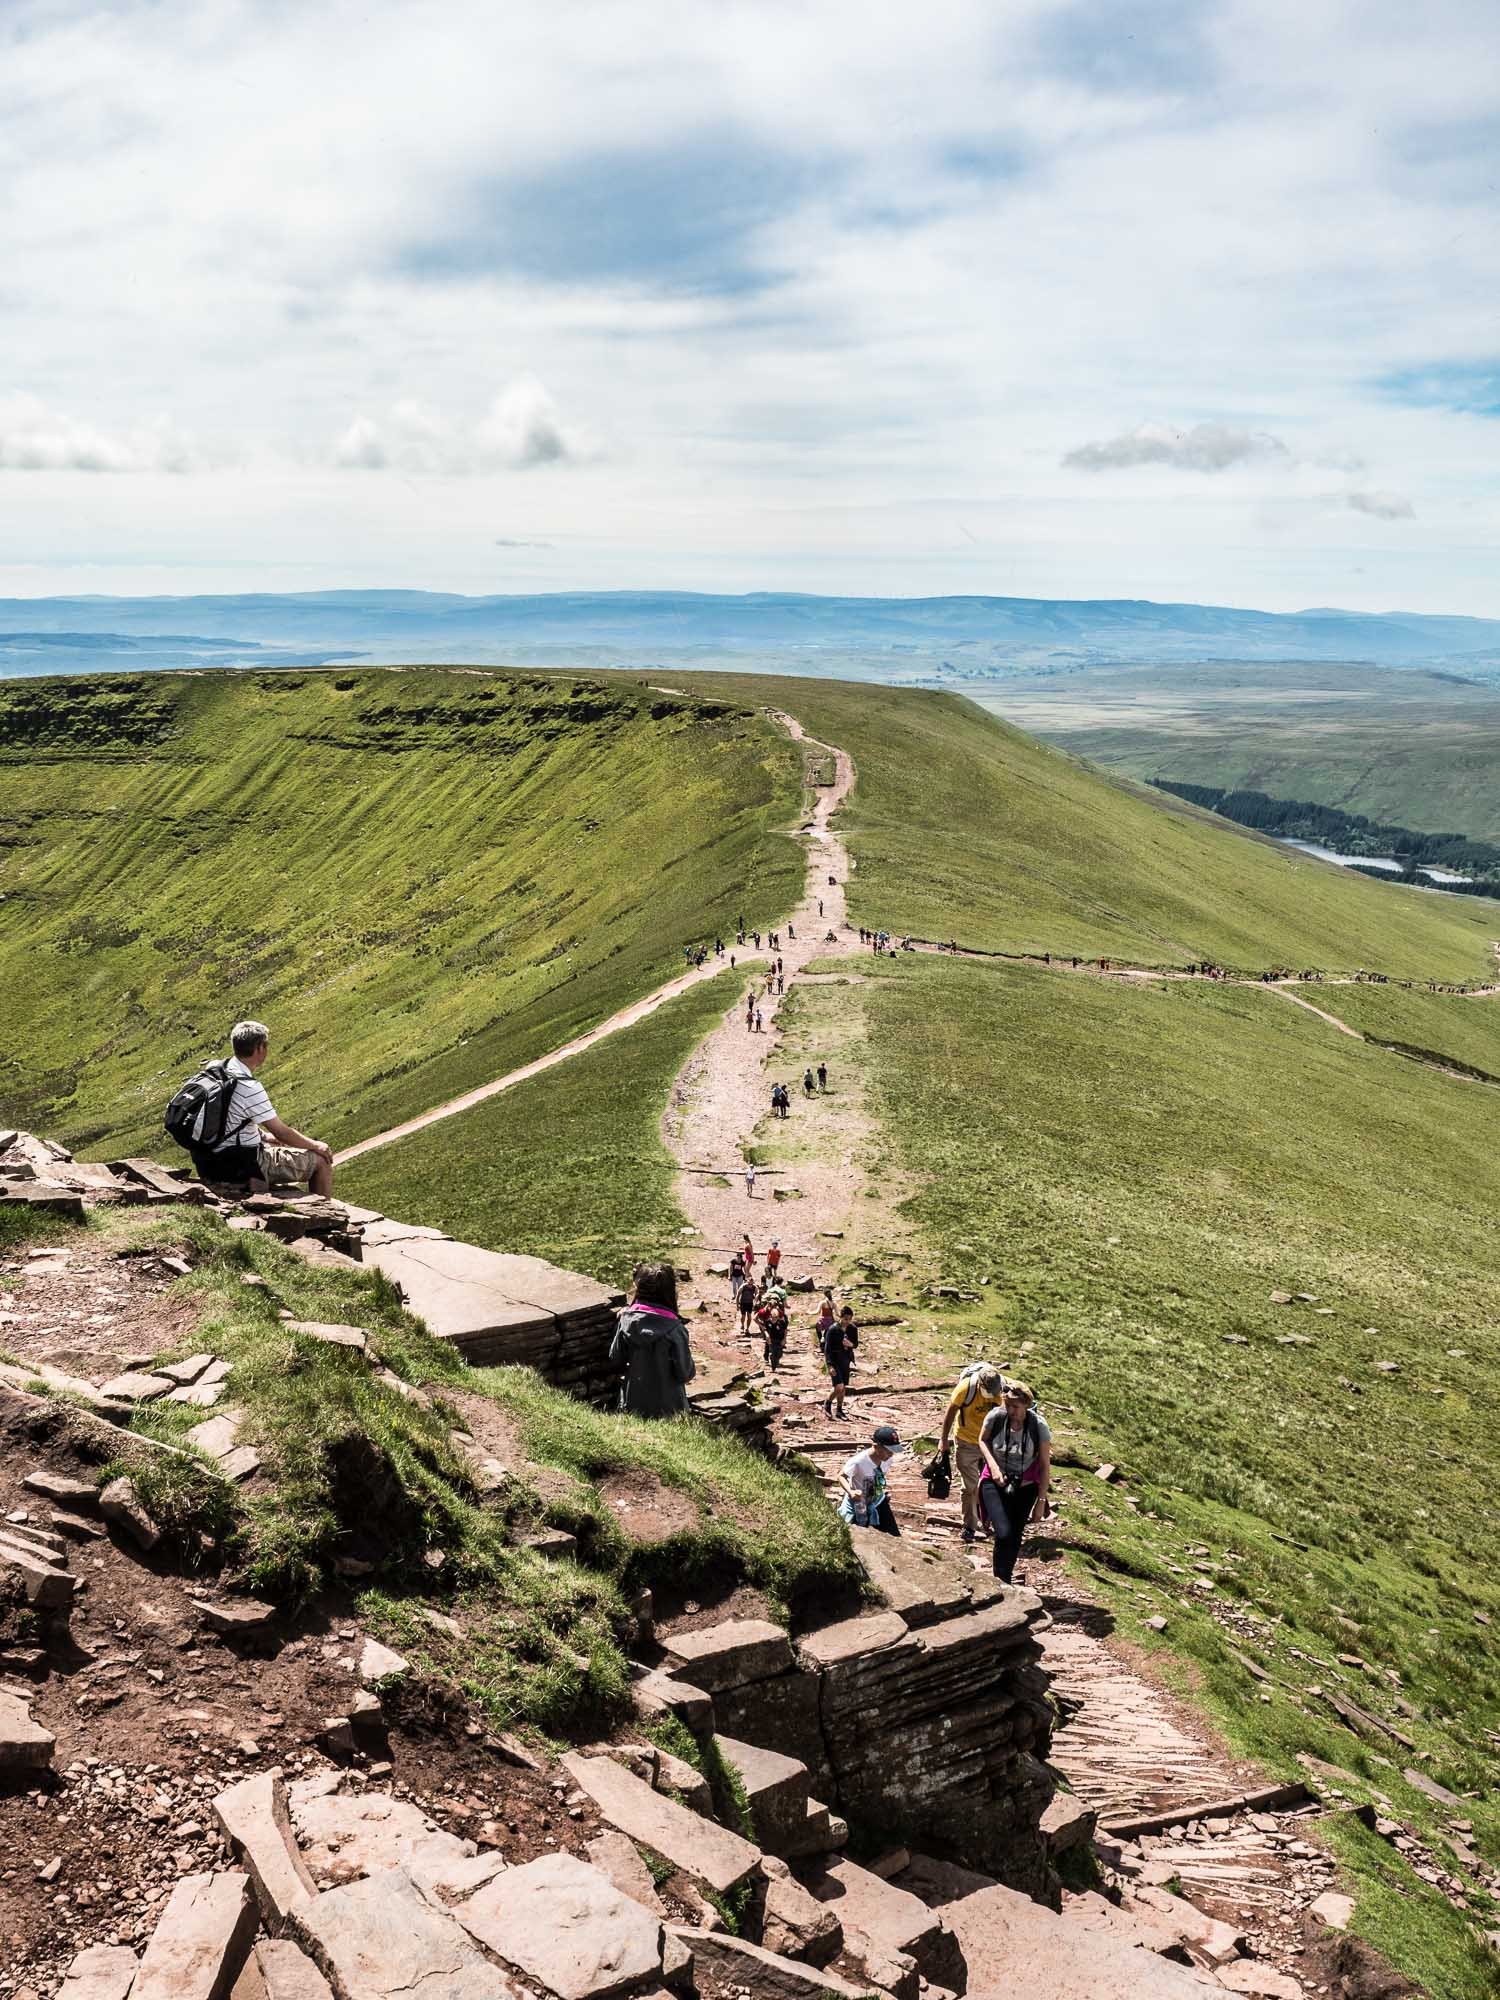 A Landscape Photograph Showing The View Down From Corn Du, With Hikers Streaming Up The Hill, In The Brecon Beacons National Park, Wales.